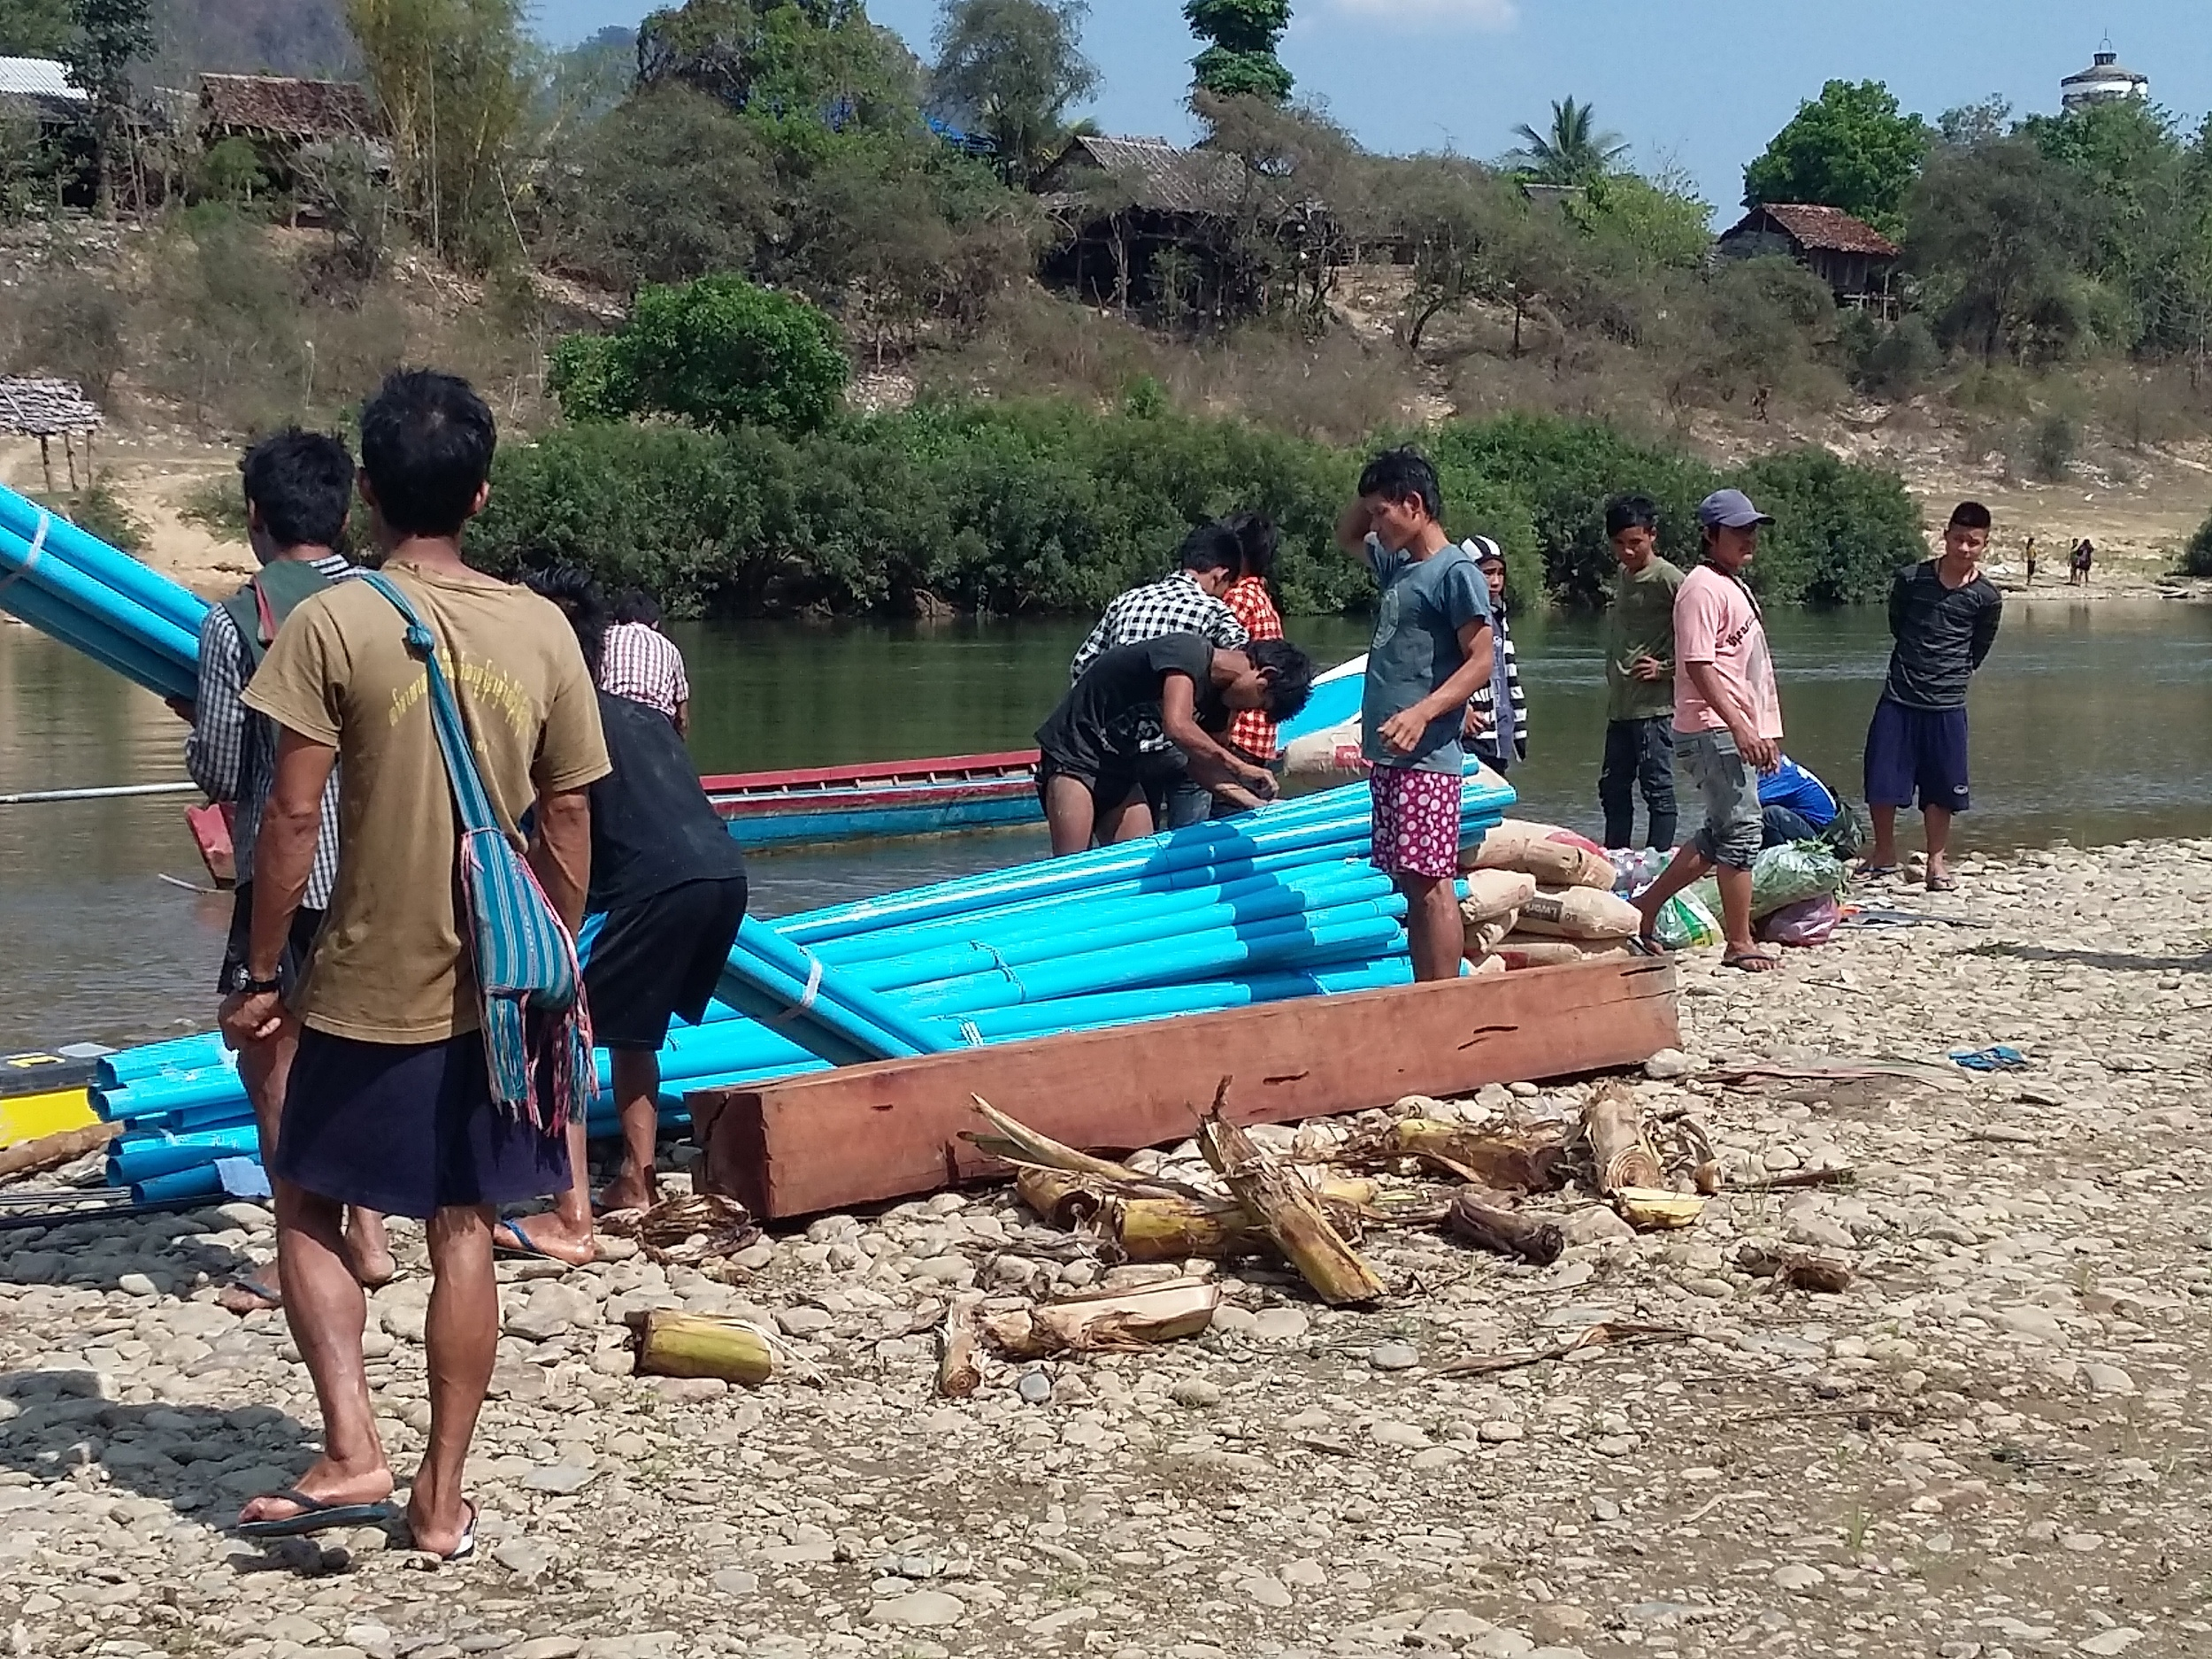 Villagers helping move material